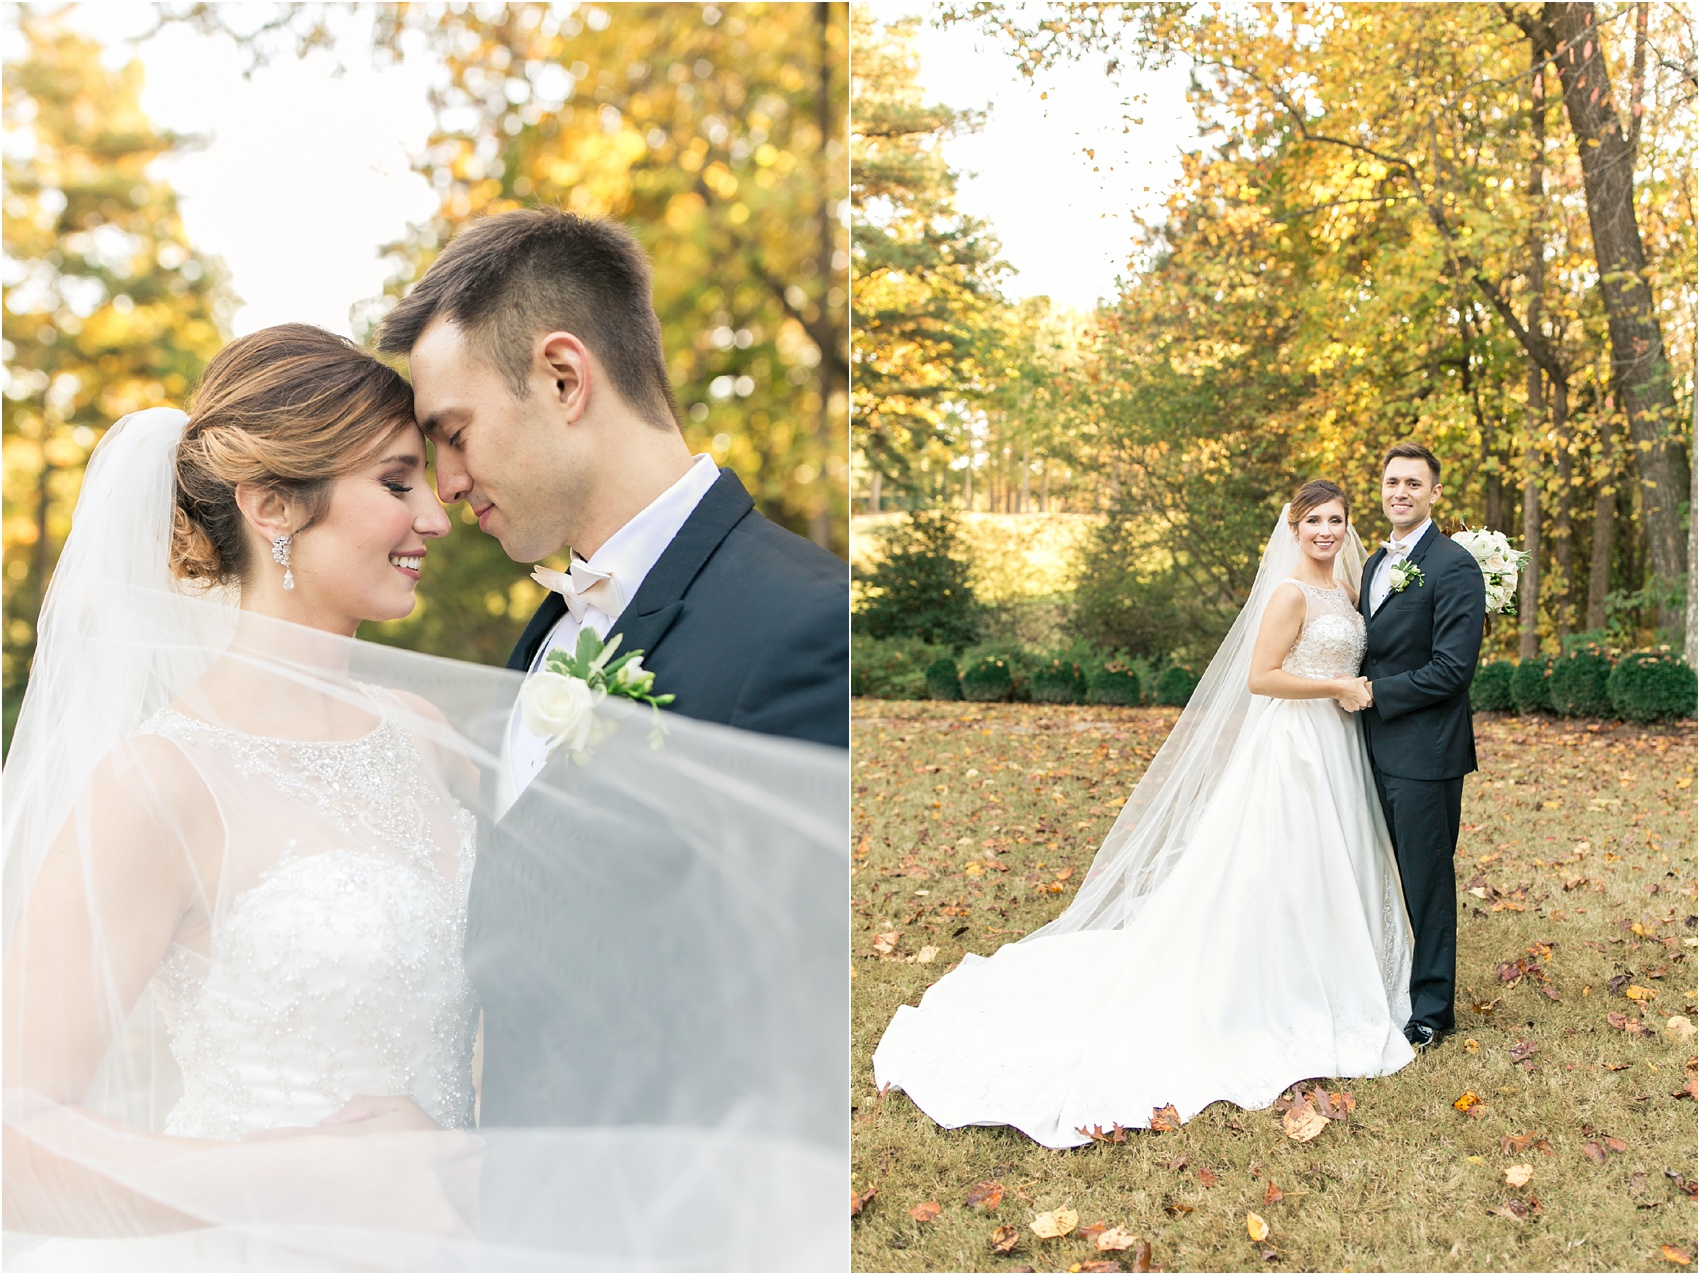 Savannah Eve Photography- Bottiglion-Scope Wedding- Sneak Peek-44.jpg